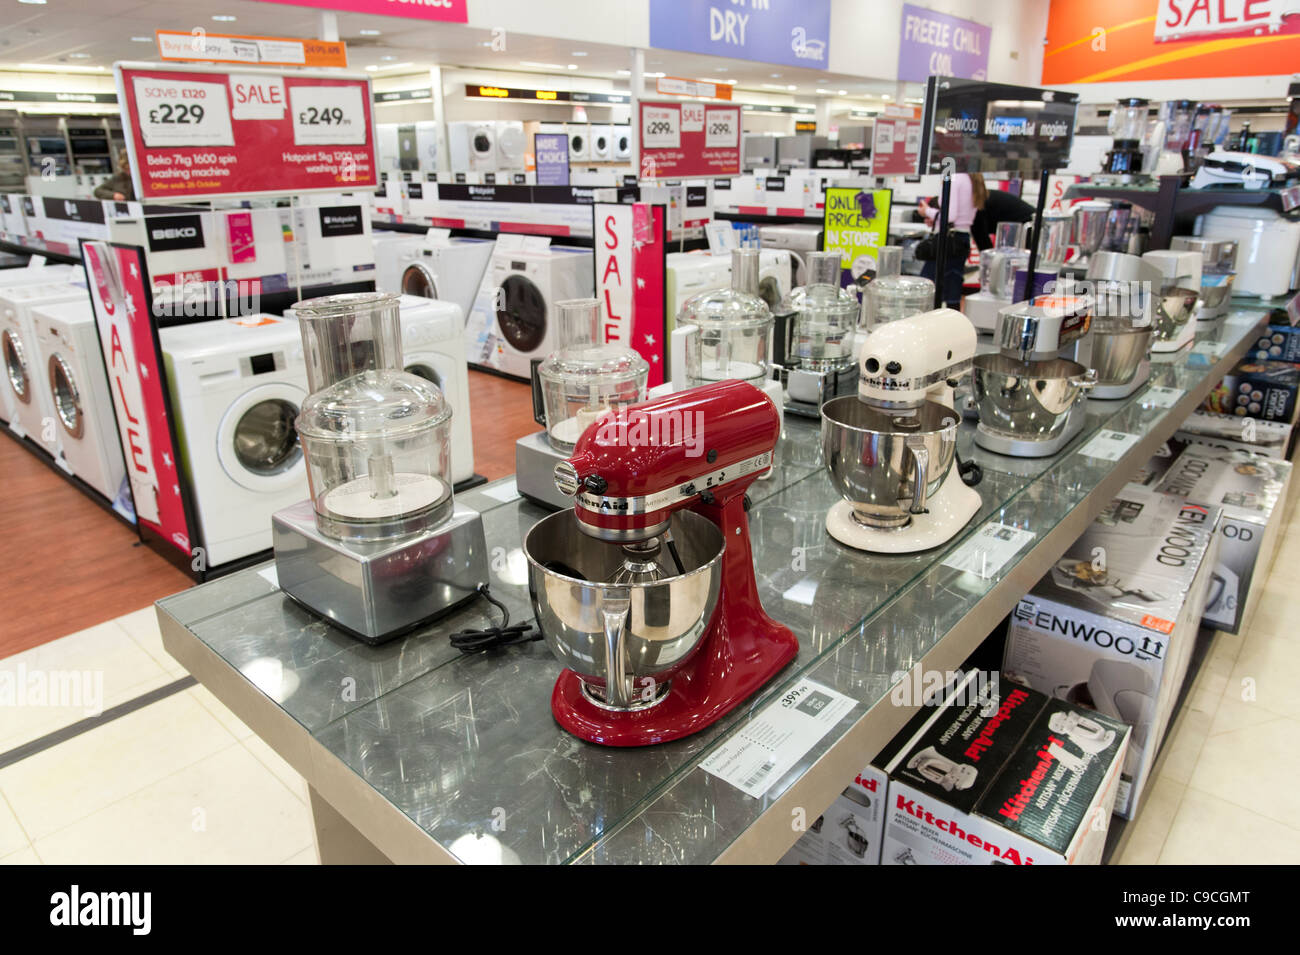 Electrical kitchen appliances in Comet store, London, England, UK - Stock Image